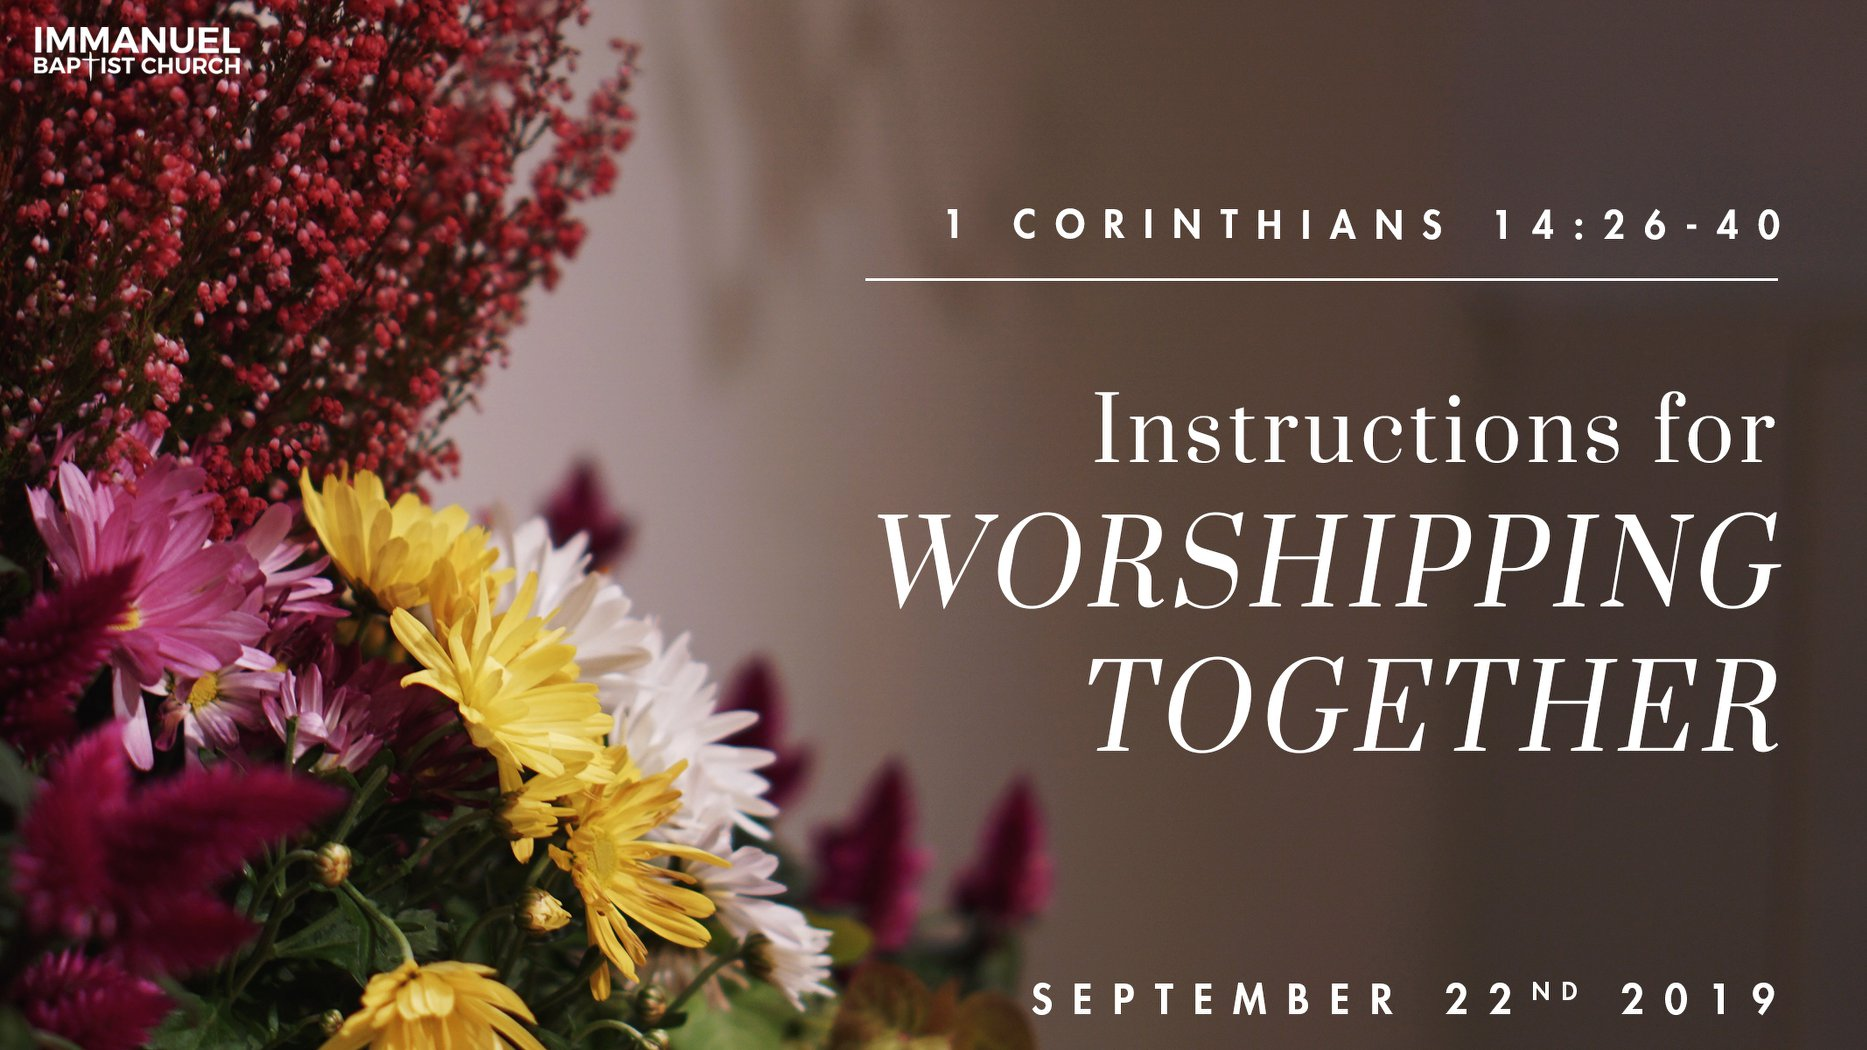 Instructions for Worshipping Together Image